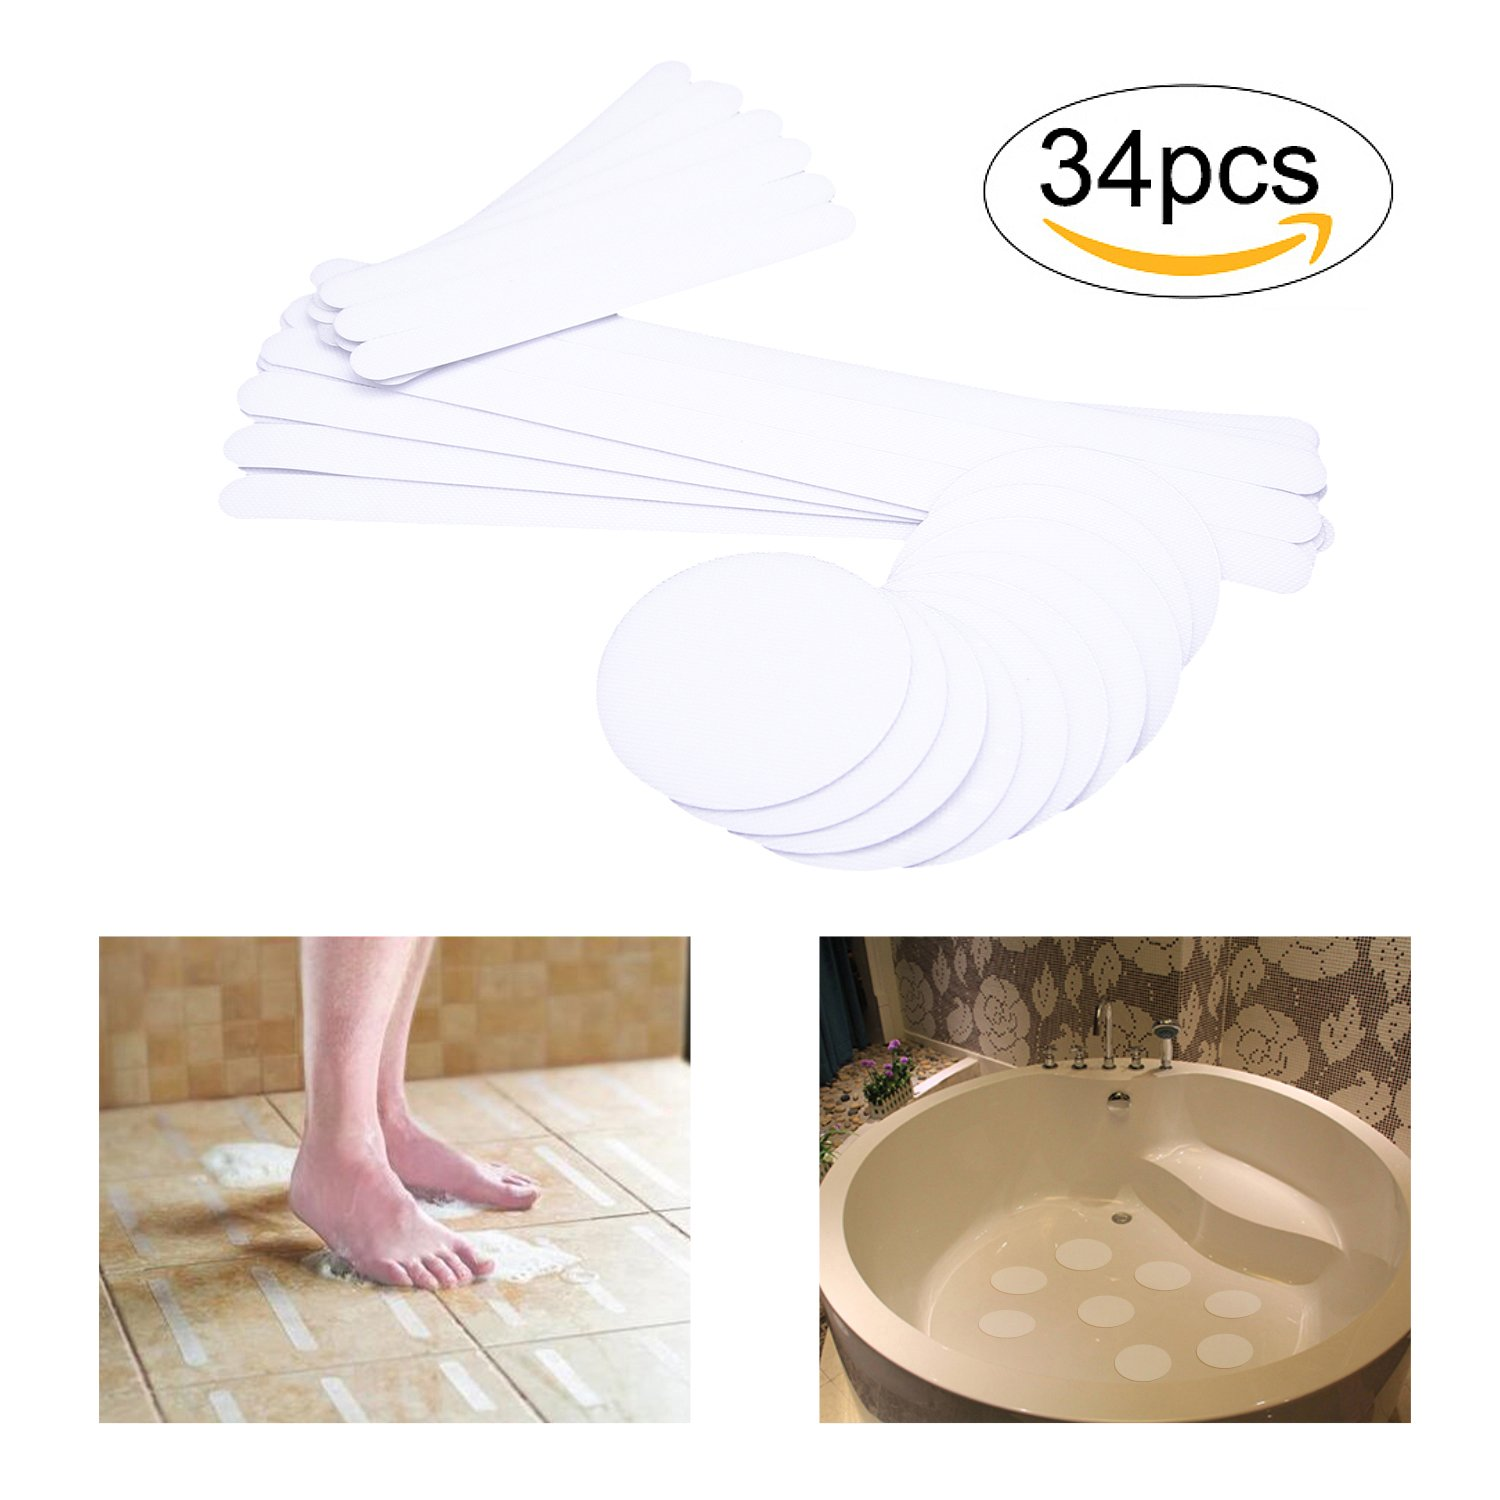 "Non Slip Tub Stickers, Bath Treads Safety Stickers for Shower, Pools, Boats, Stairs & More (Clear 10pcs 4 in(10cm) Diameter+ 12pcs 7.5"" x 0.79""+12pcs 15"" x 0.79"")"